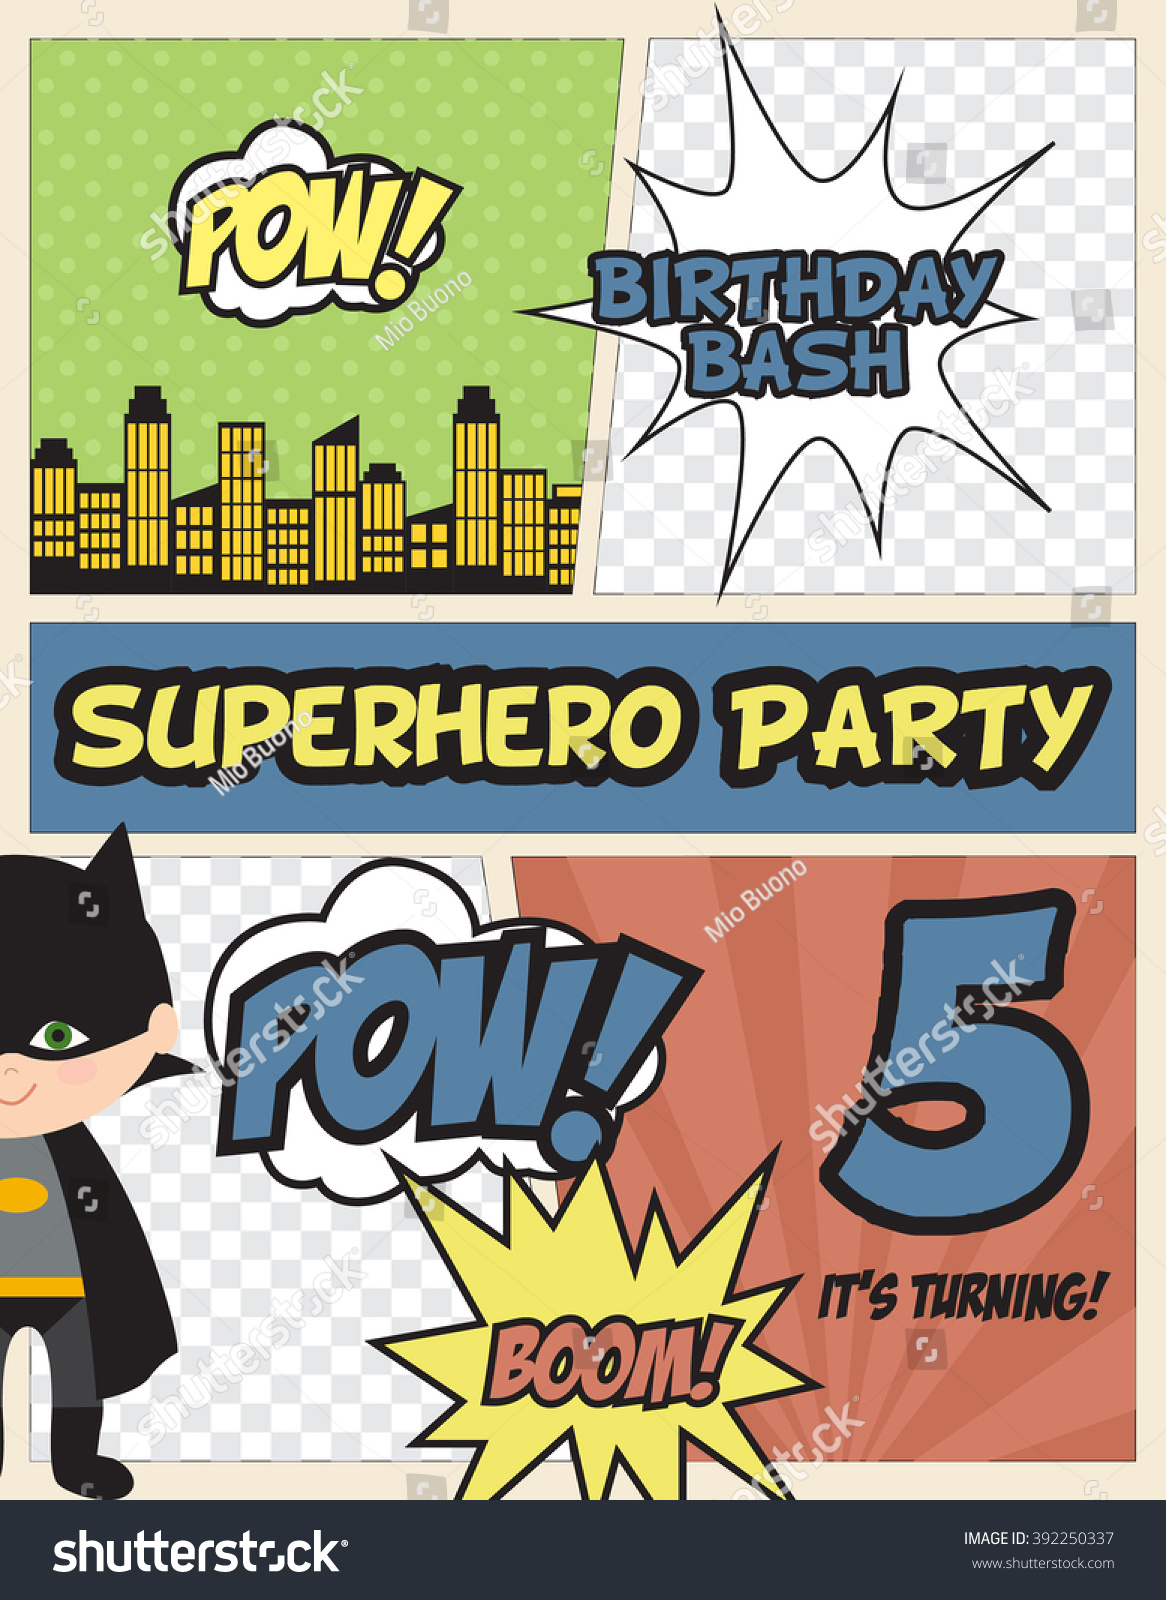 Superhero Party Invitation Card Stock Vector HD (Royalty Free ...